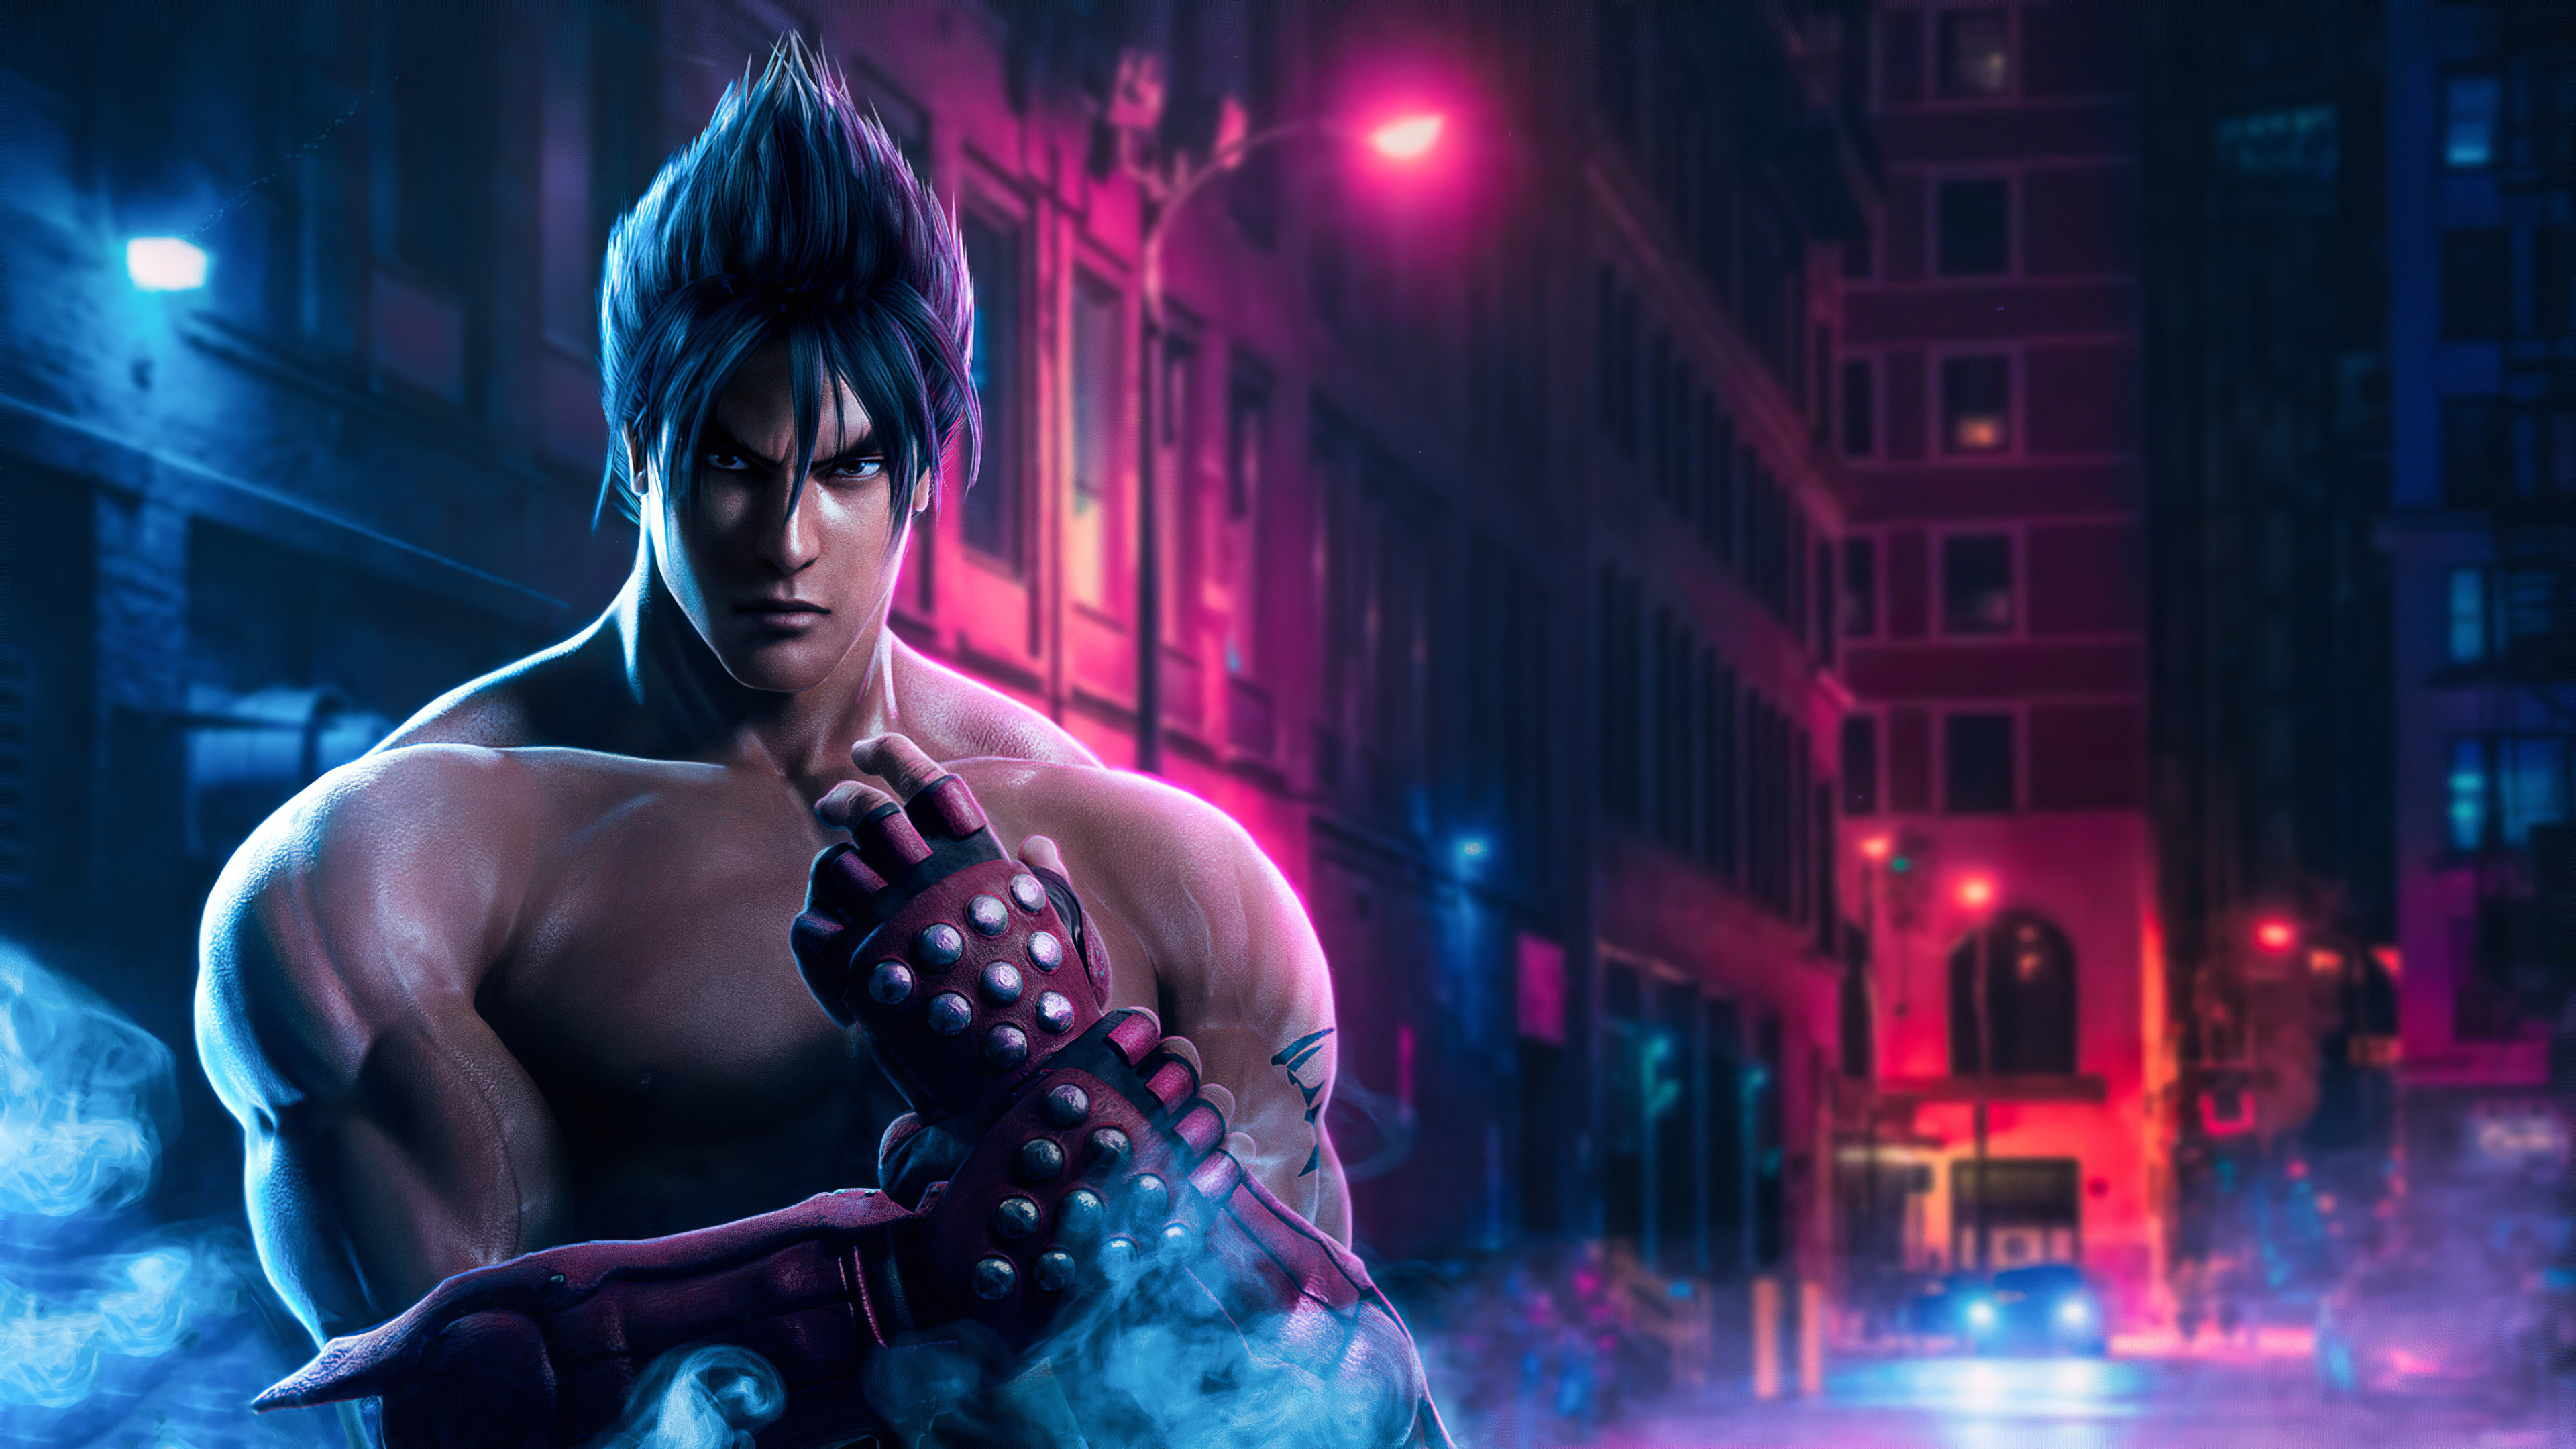 320x480 Jin Kazama Tekken 7 Apple Iphone Ipod Touch Galaxy Ace Wallpaper Hd Games 4k Wallpapers Images Photos And Background